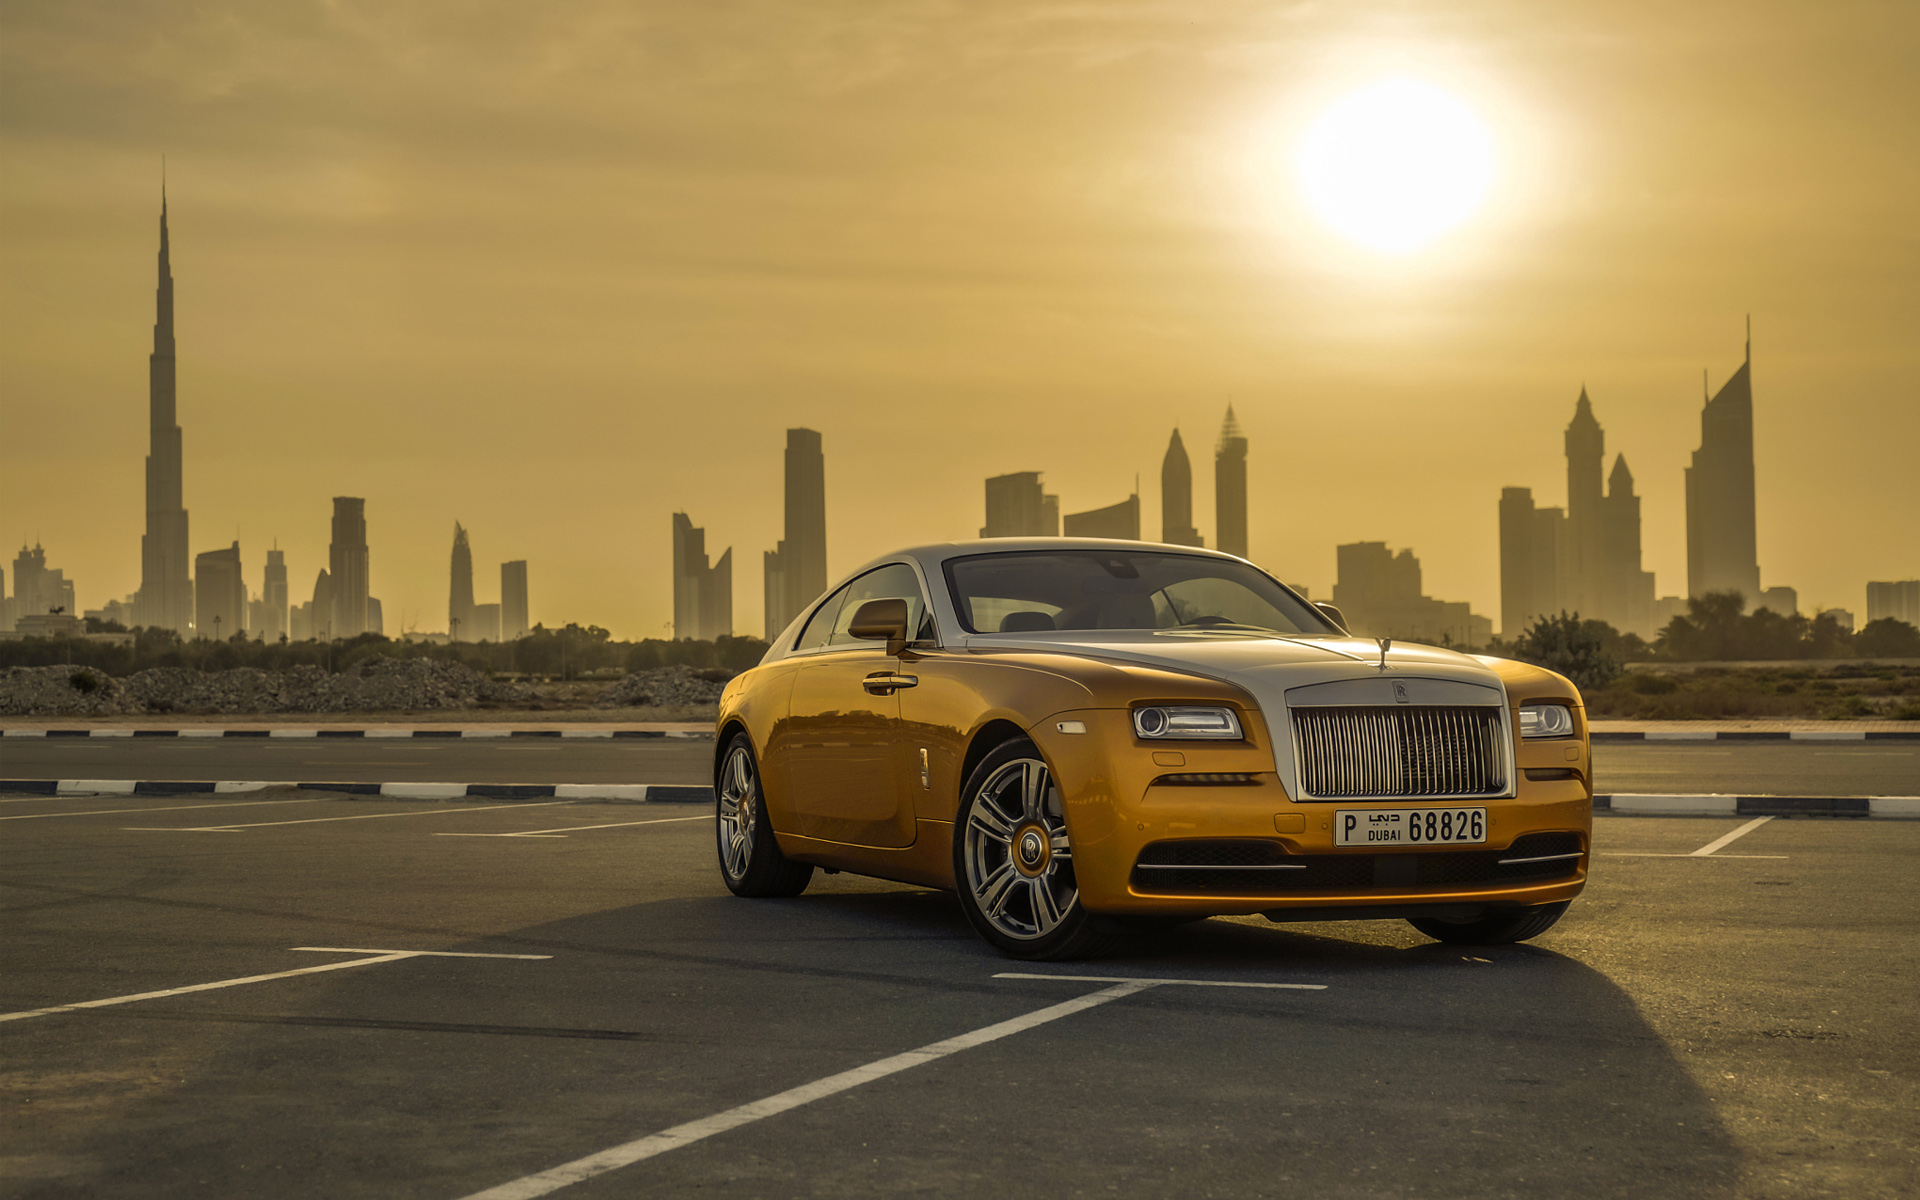 Rolls Royce Wraith Wallpaper Hd Car Wallpapers Id 5751